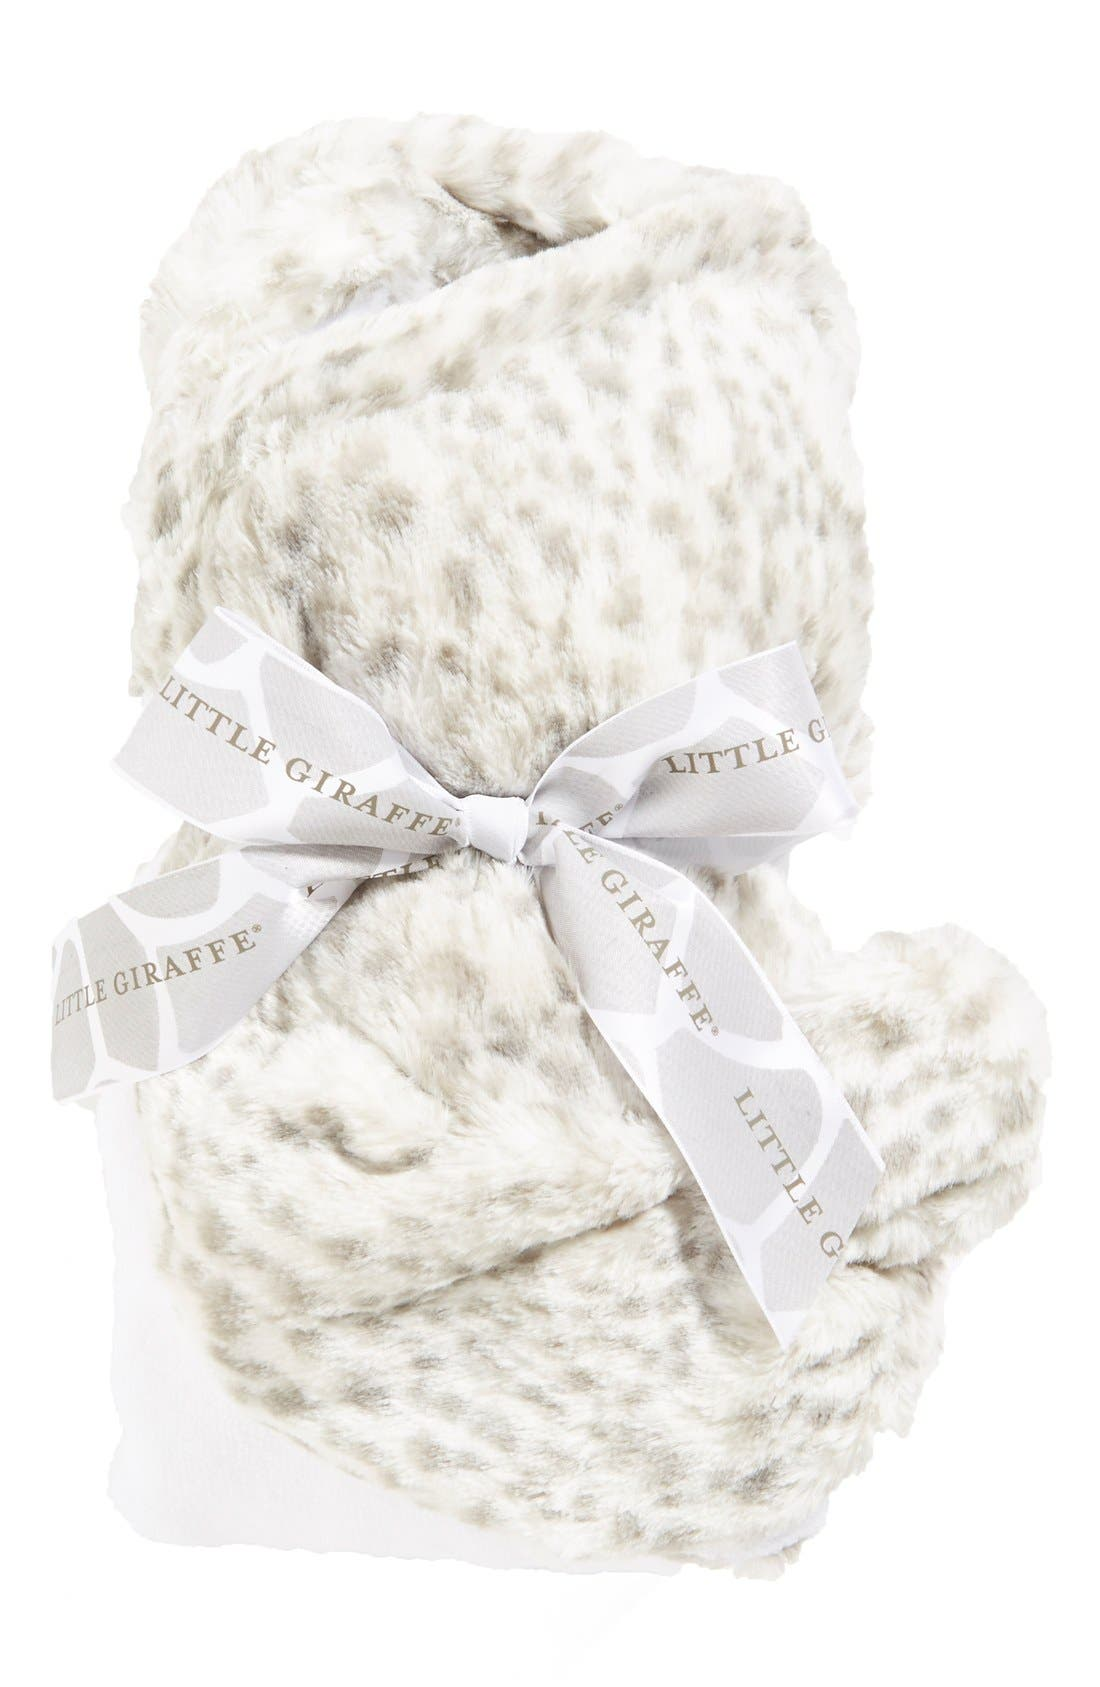 'Luxe Snow Leopard' Hooded Towel,                             Alternate thumbnail 2, color,                             040